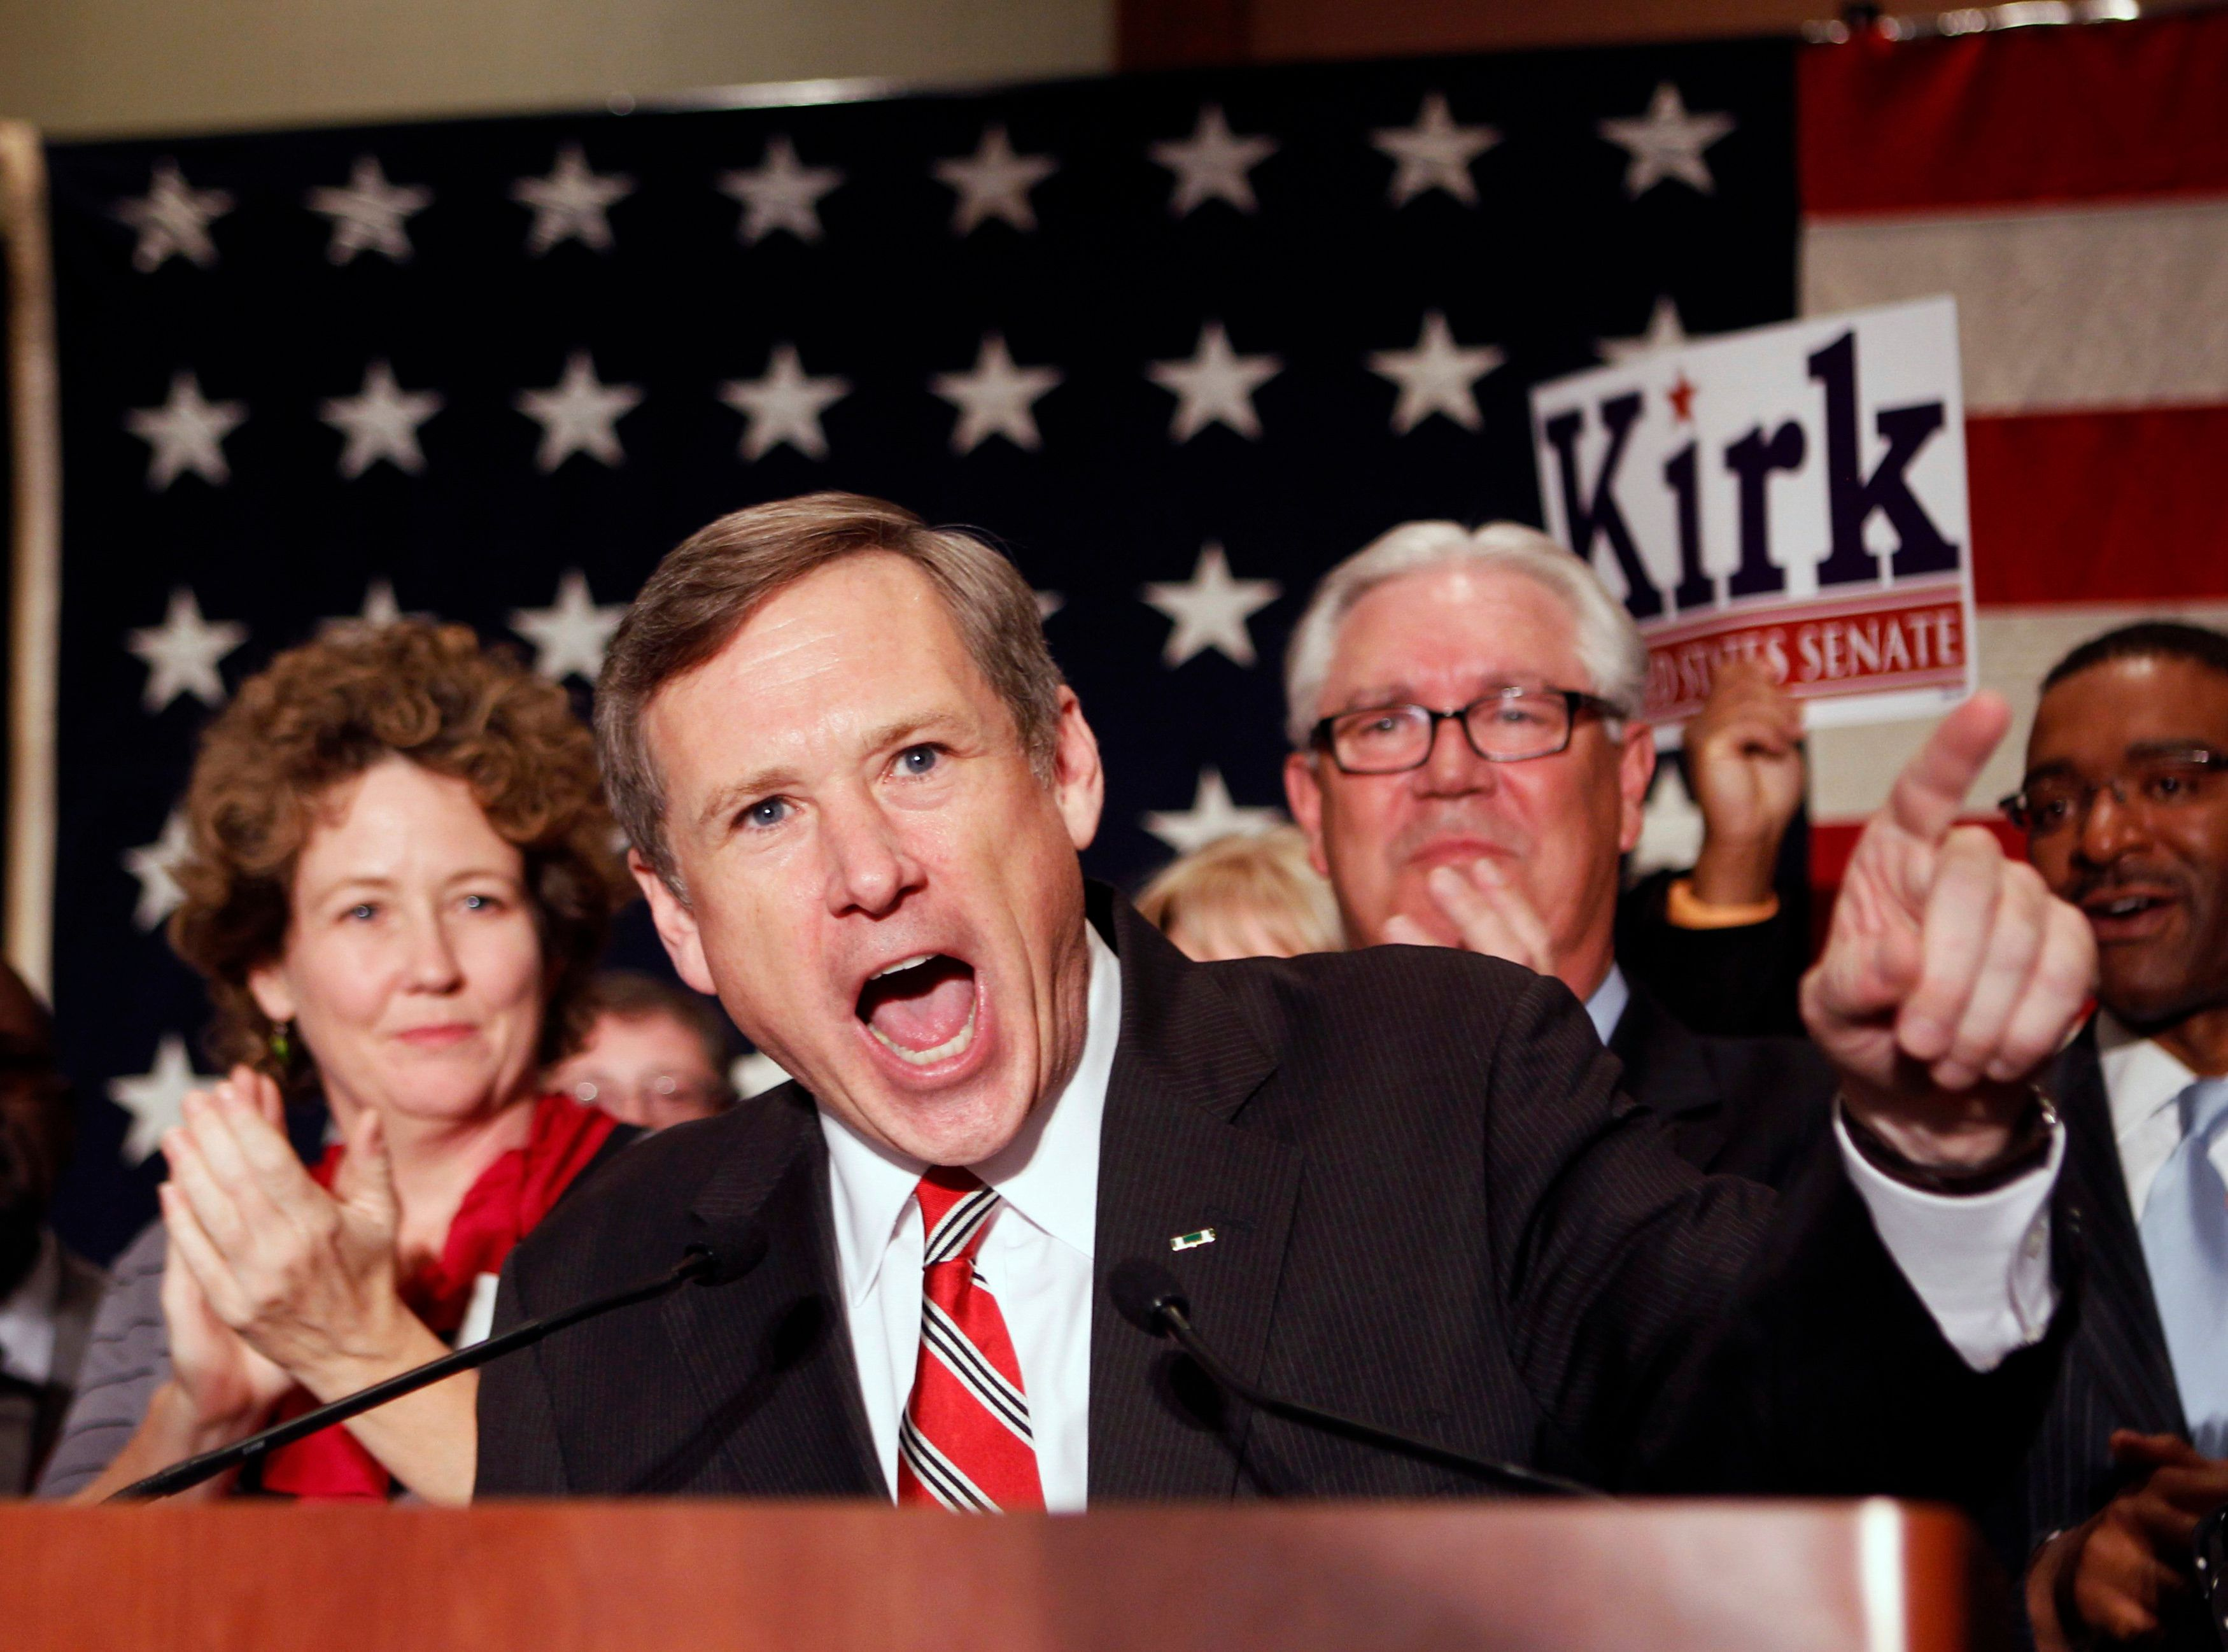 Republican U.S. Senate candidate Mark Kirk of Illinois celebrates with his family and supporters after beating Democratic nominee Alexi Giannoulias for the Senate seat formally held by U.S. President Barack Obama, at an election night rally in Wheeling, Illinois November 2, 2010. REUTERS/Jeff Haynes (UNITED STATES - Tags: ELECTIONS POLITICS)